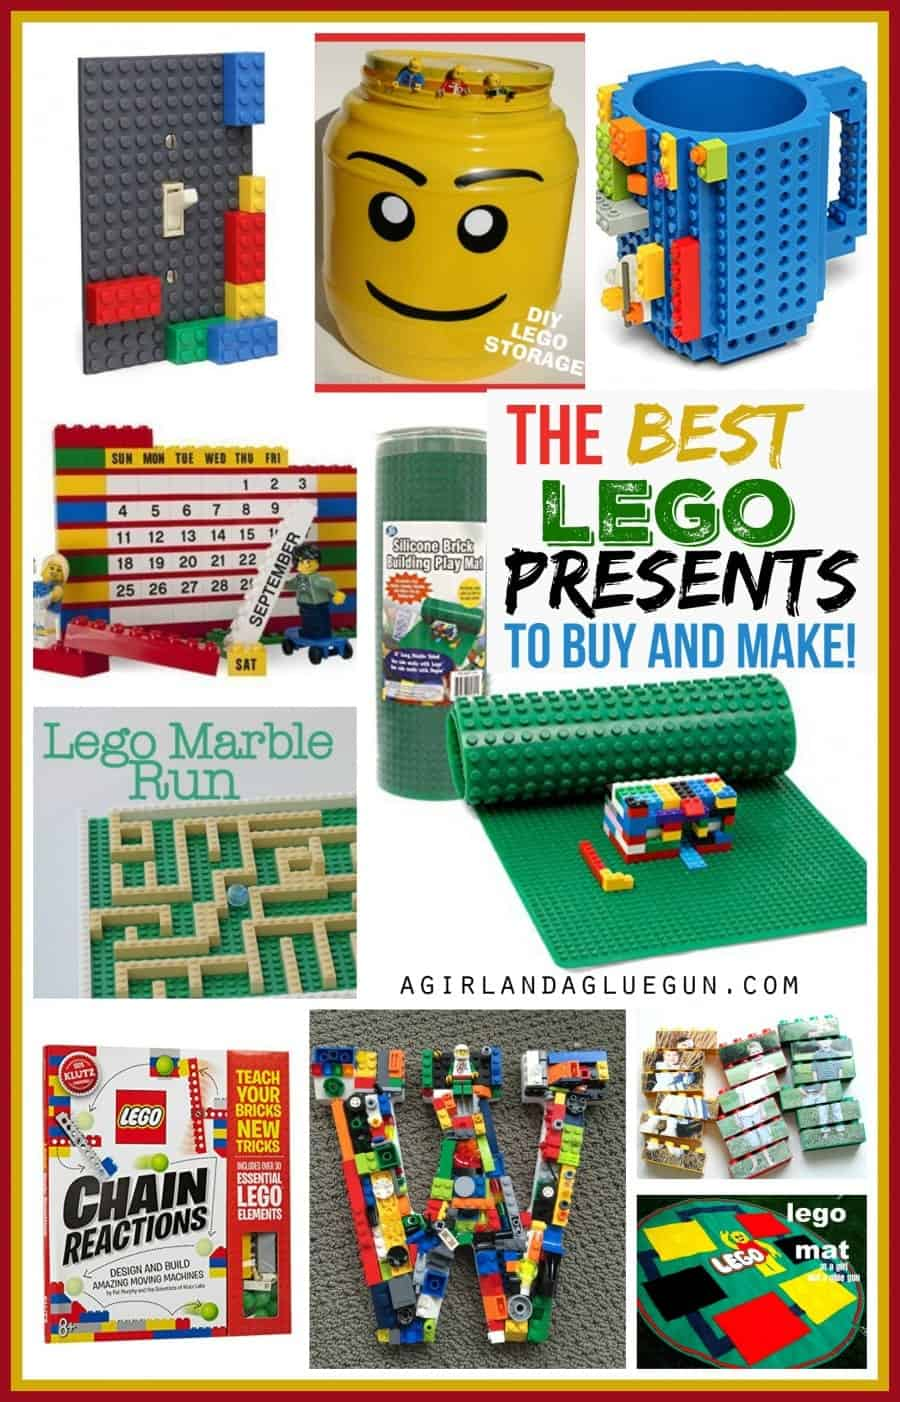 the best lego presents to buy and make